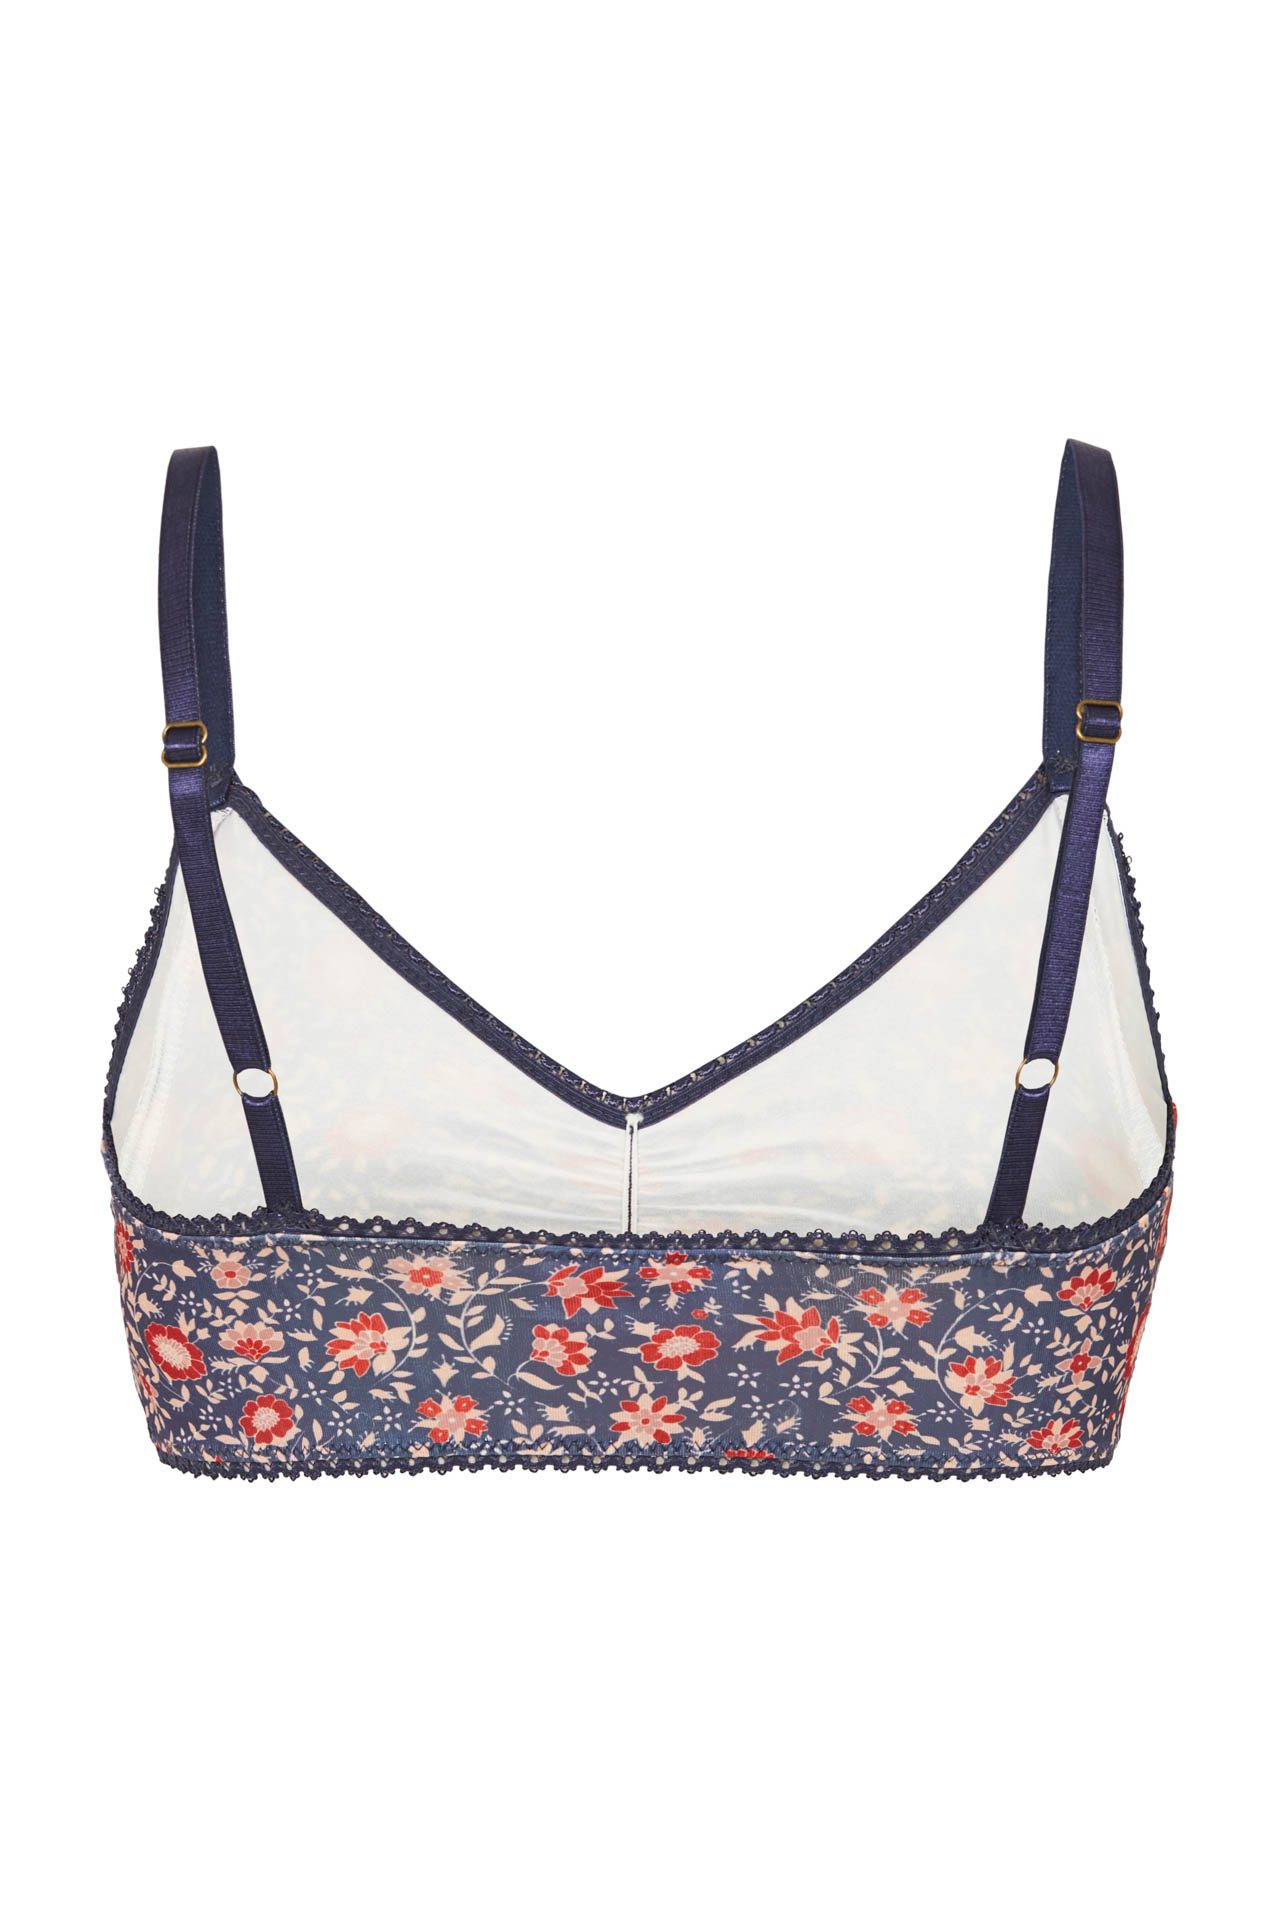 d9c5f450628 Spell   the Gypsy Collective Jasmine Bralette Navy - Belle   the Brave